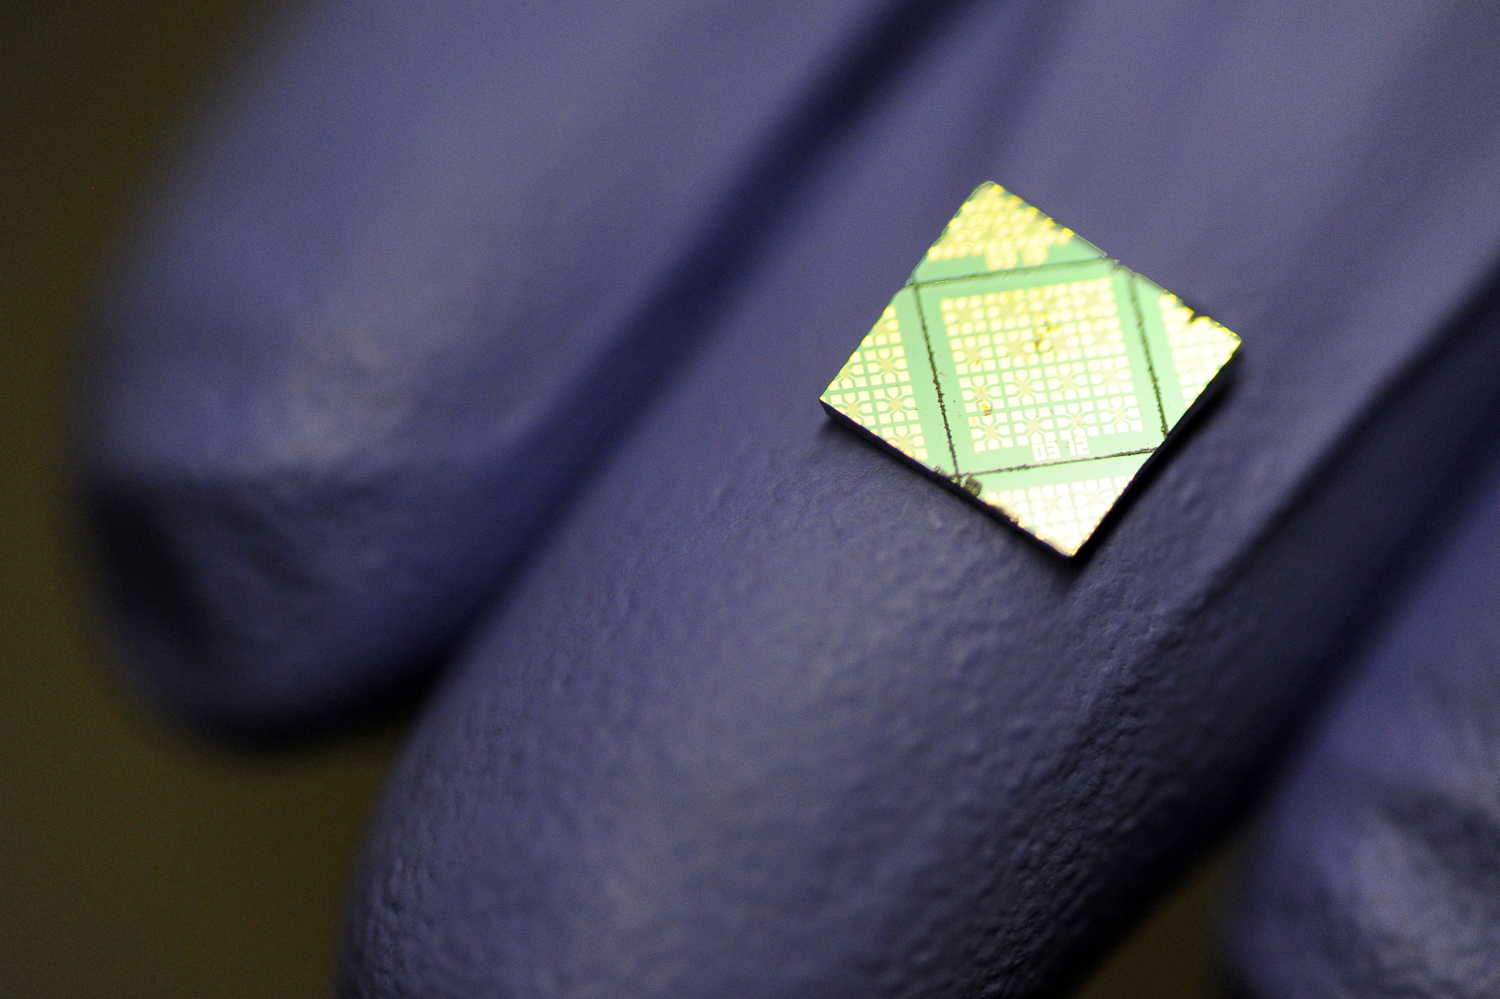 A scientist at the University of Southern California holds a chip containing bacteria cells that are the basis for their research involving biological electron transport. Scientists at USC are doing basic research to determine how certain bacteria are able to transfer electrons great distances from themselves to other cells or inorganic minerals. Photograph by Kent Treptow for PBSNewsHour